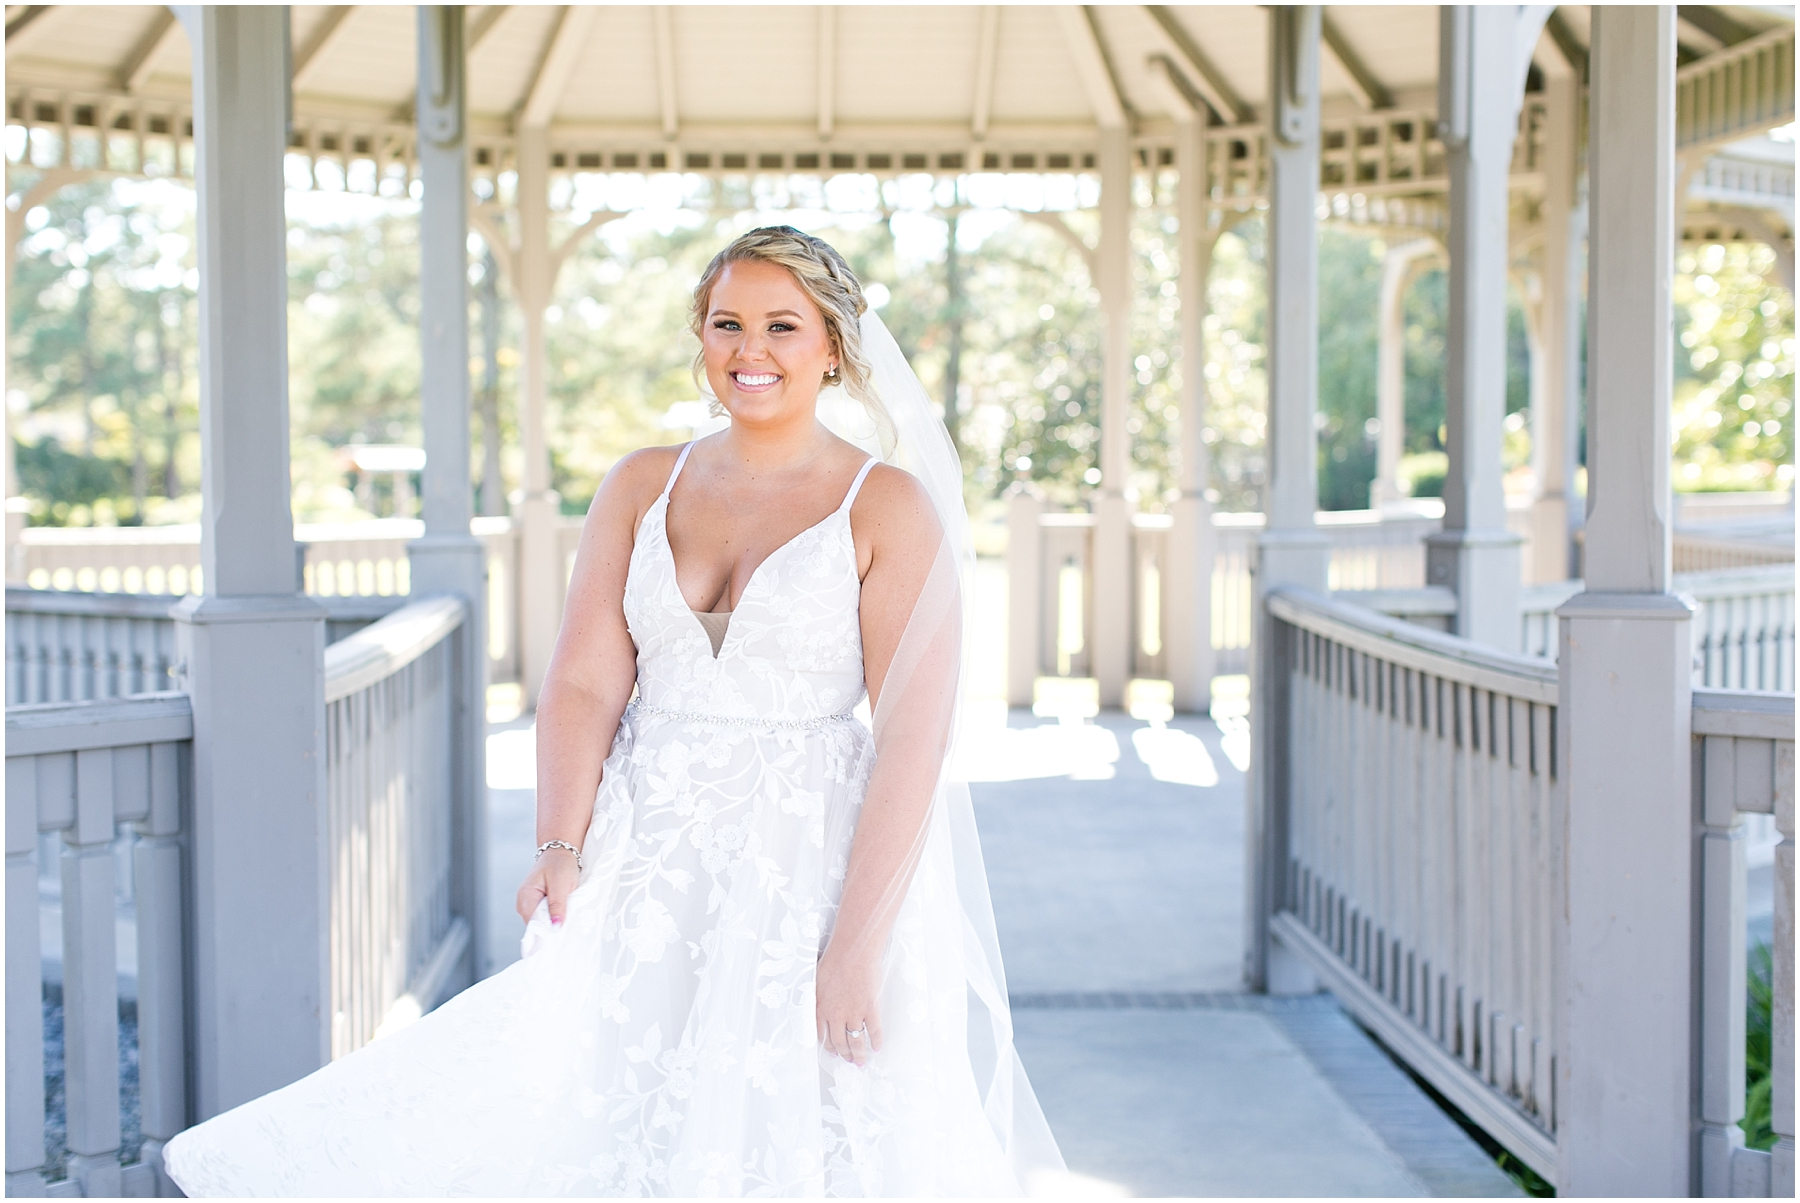 bridal portrait, norfolk botanical gardens wedding day, candid wedding photography, jessica ryan photography